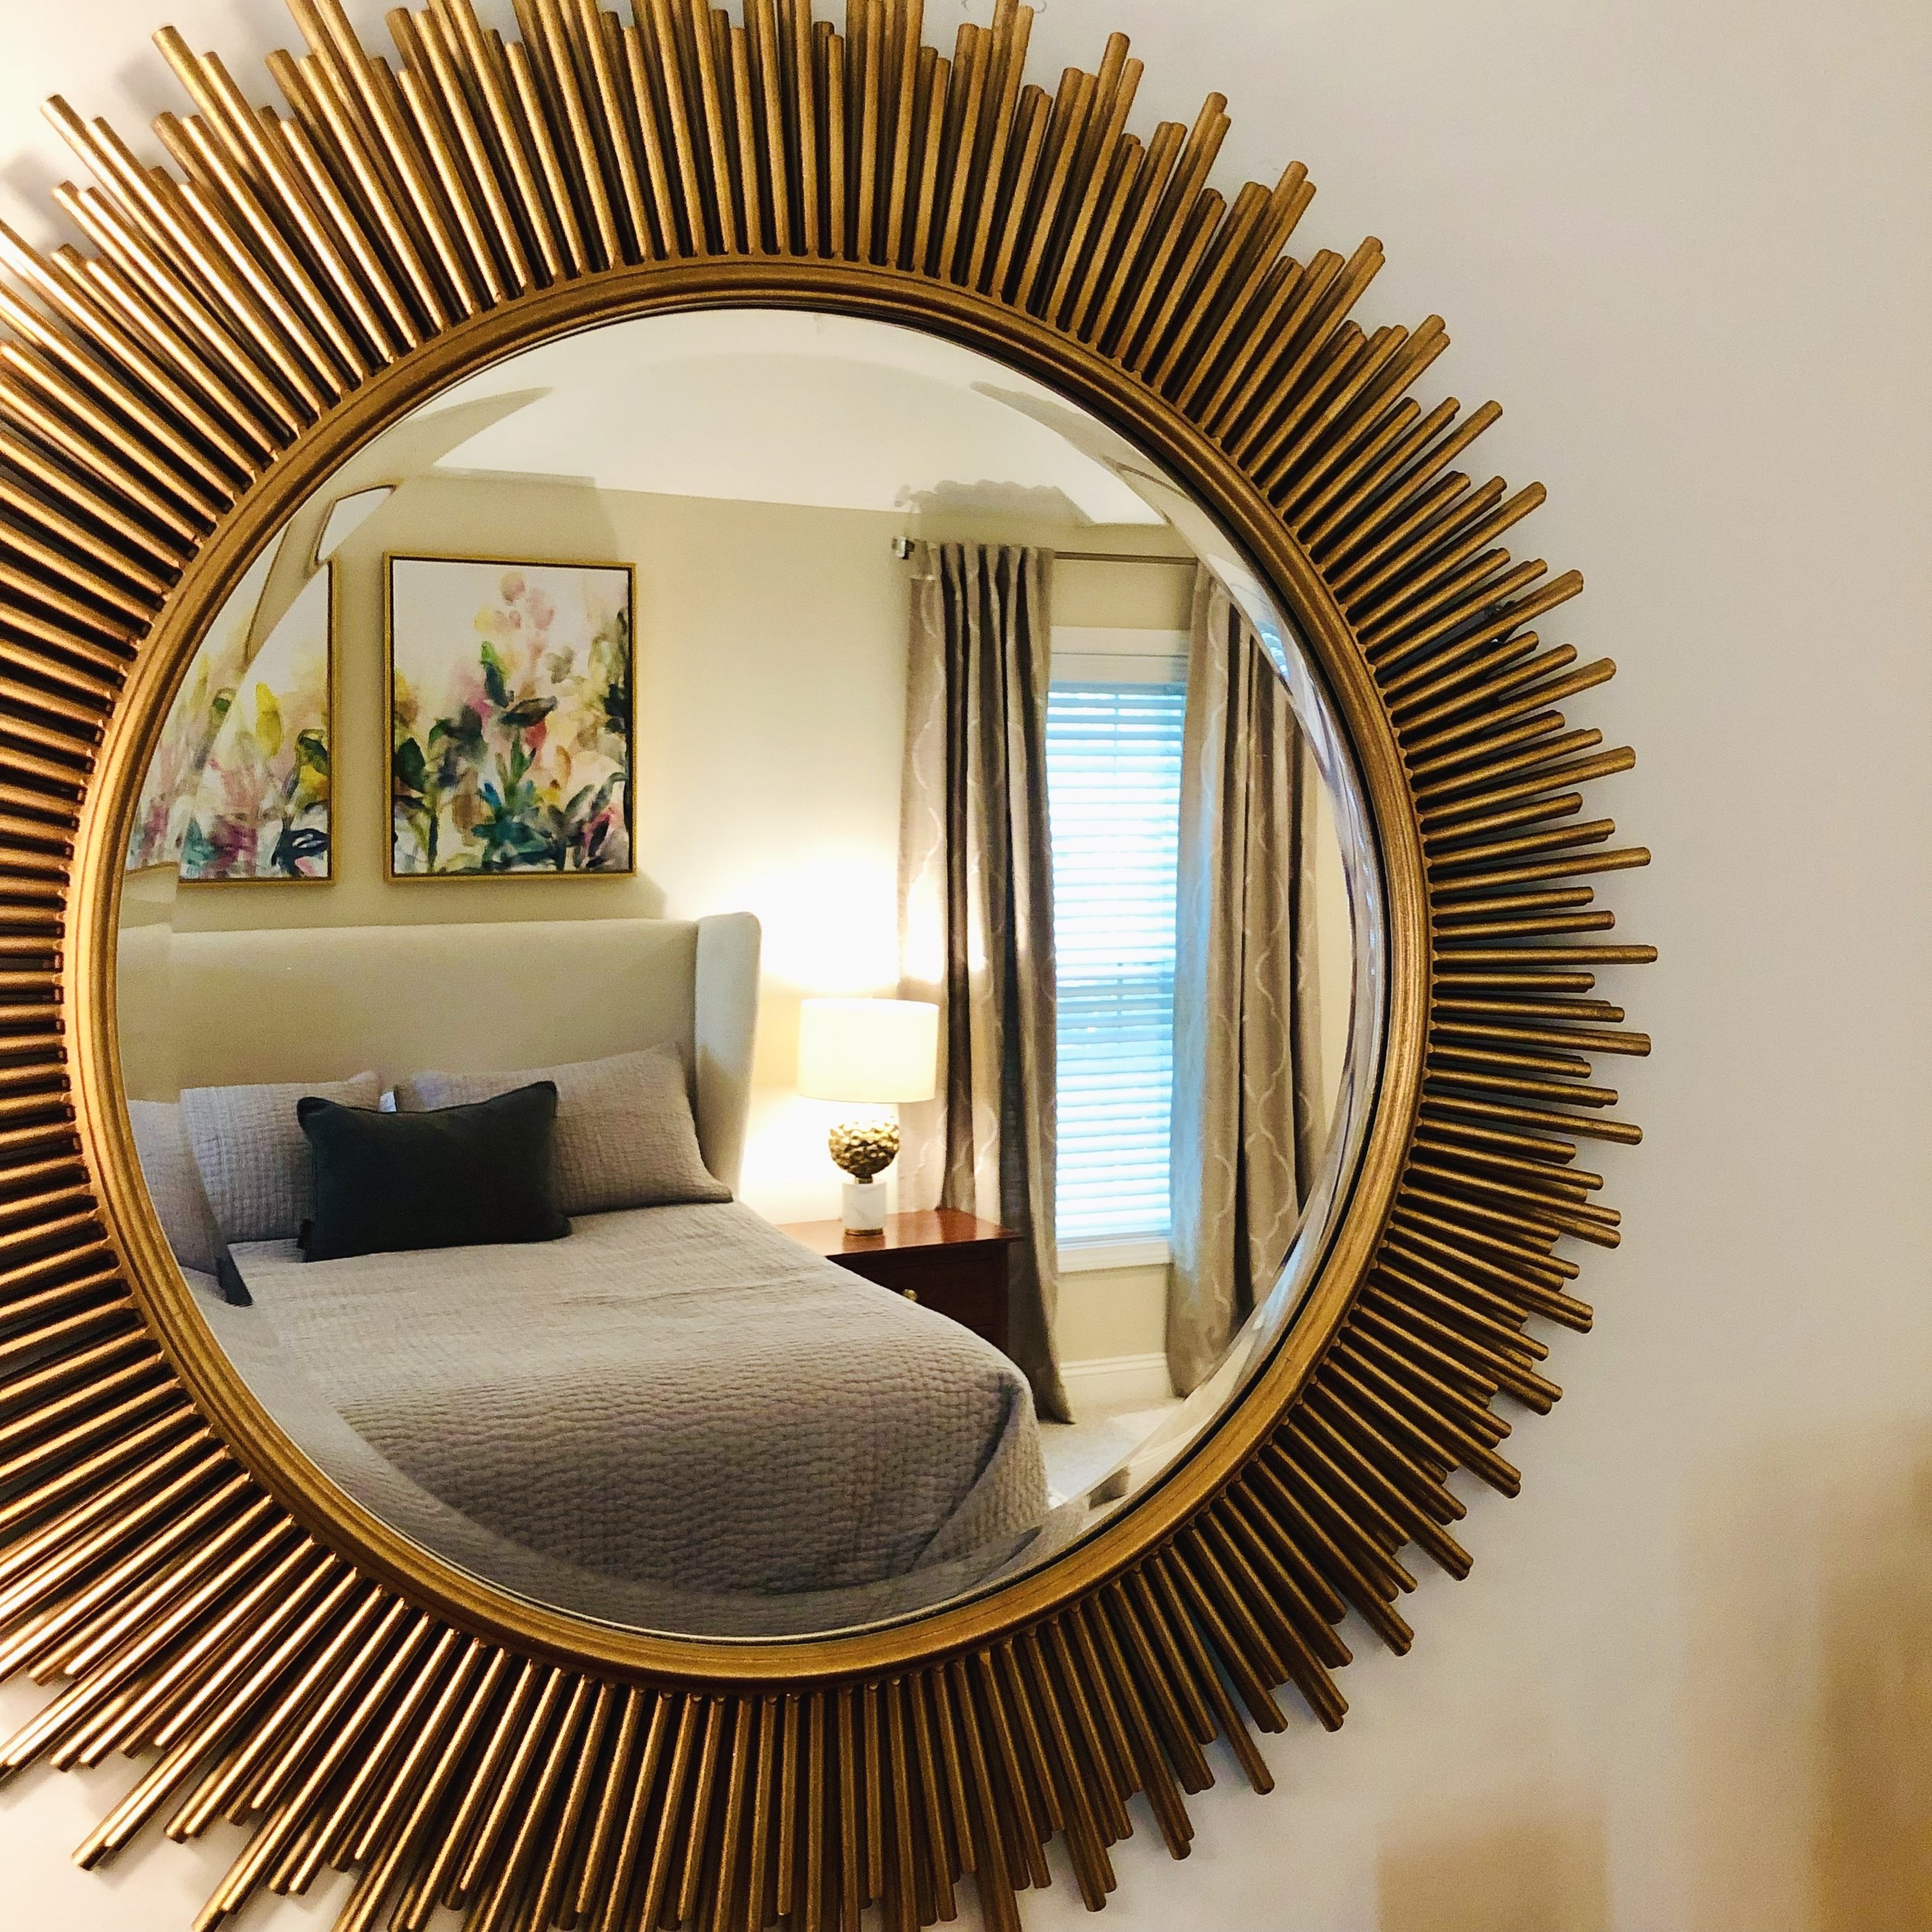 Gold Glam Mirror Over the Dresser